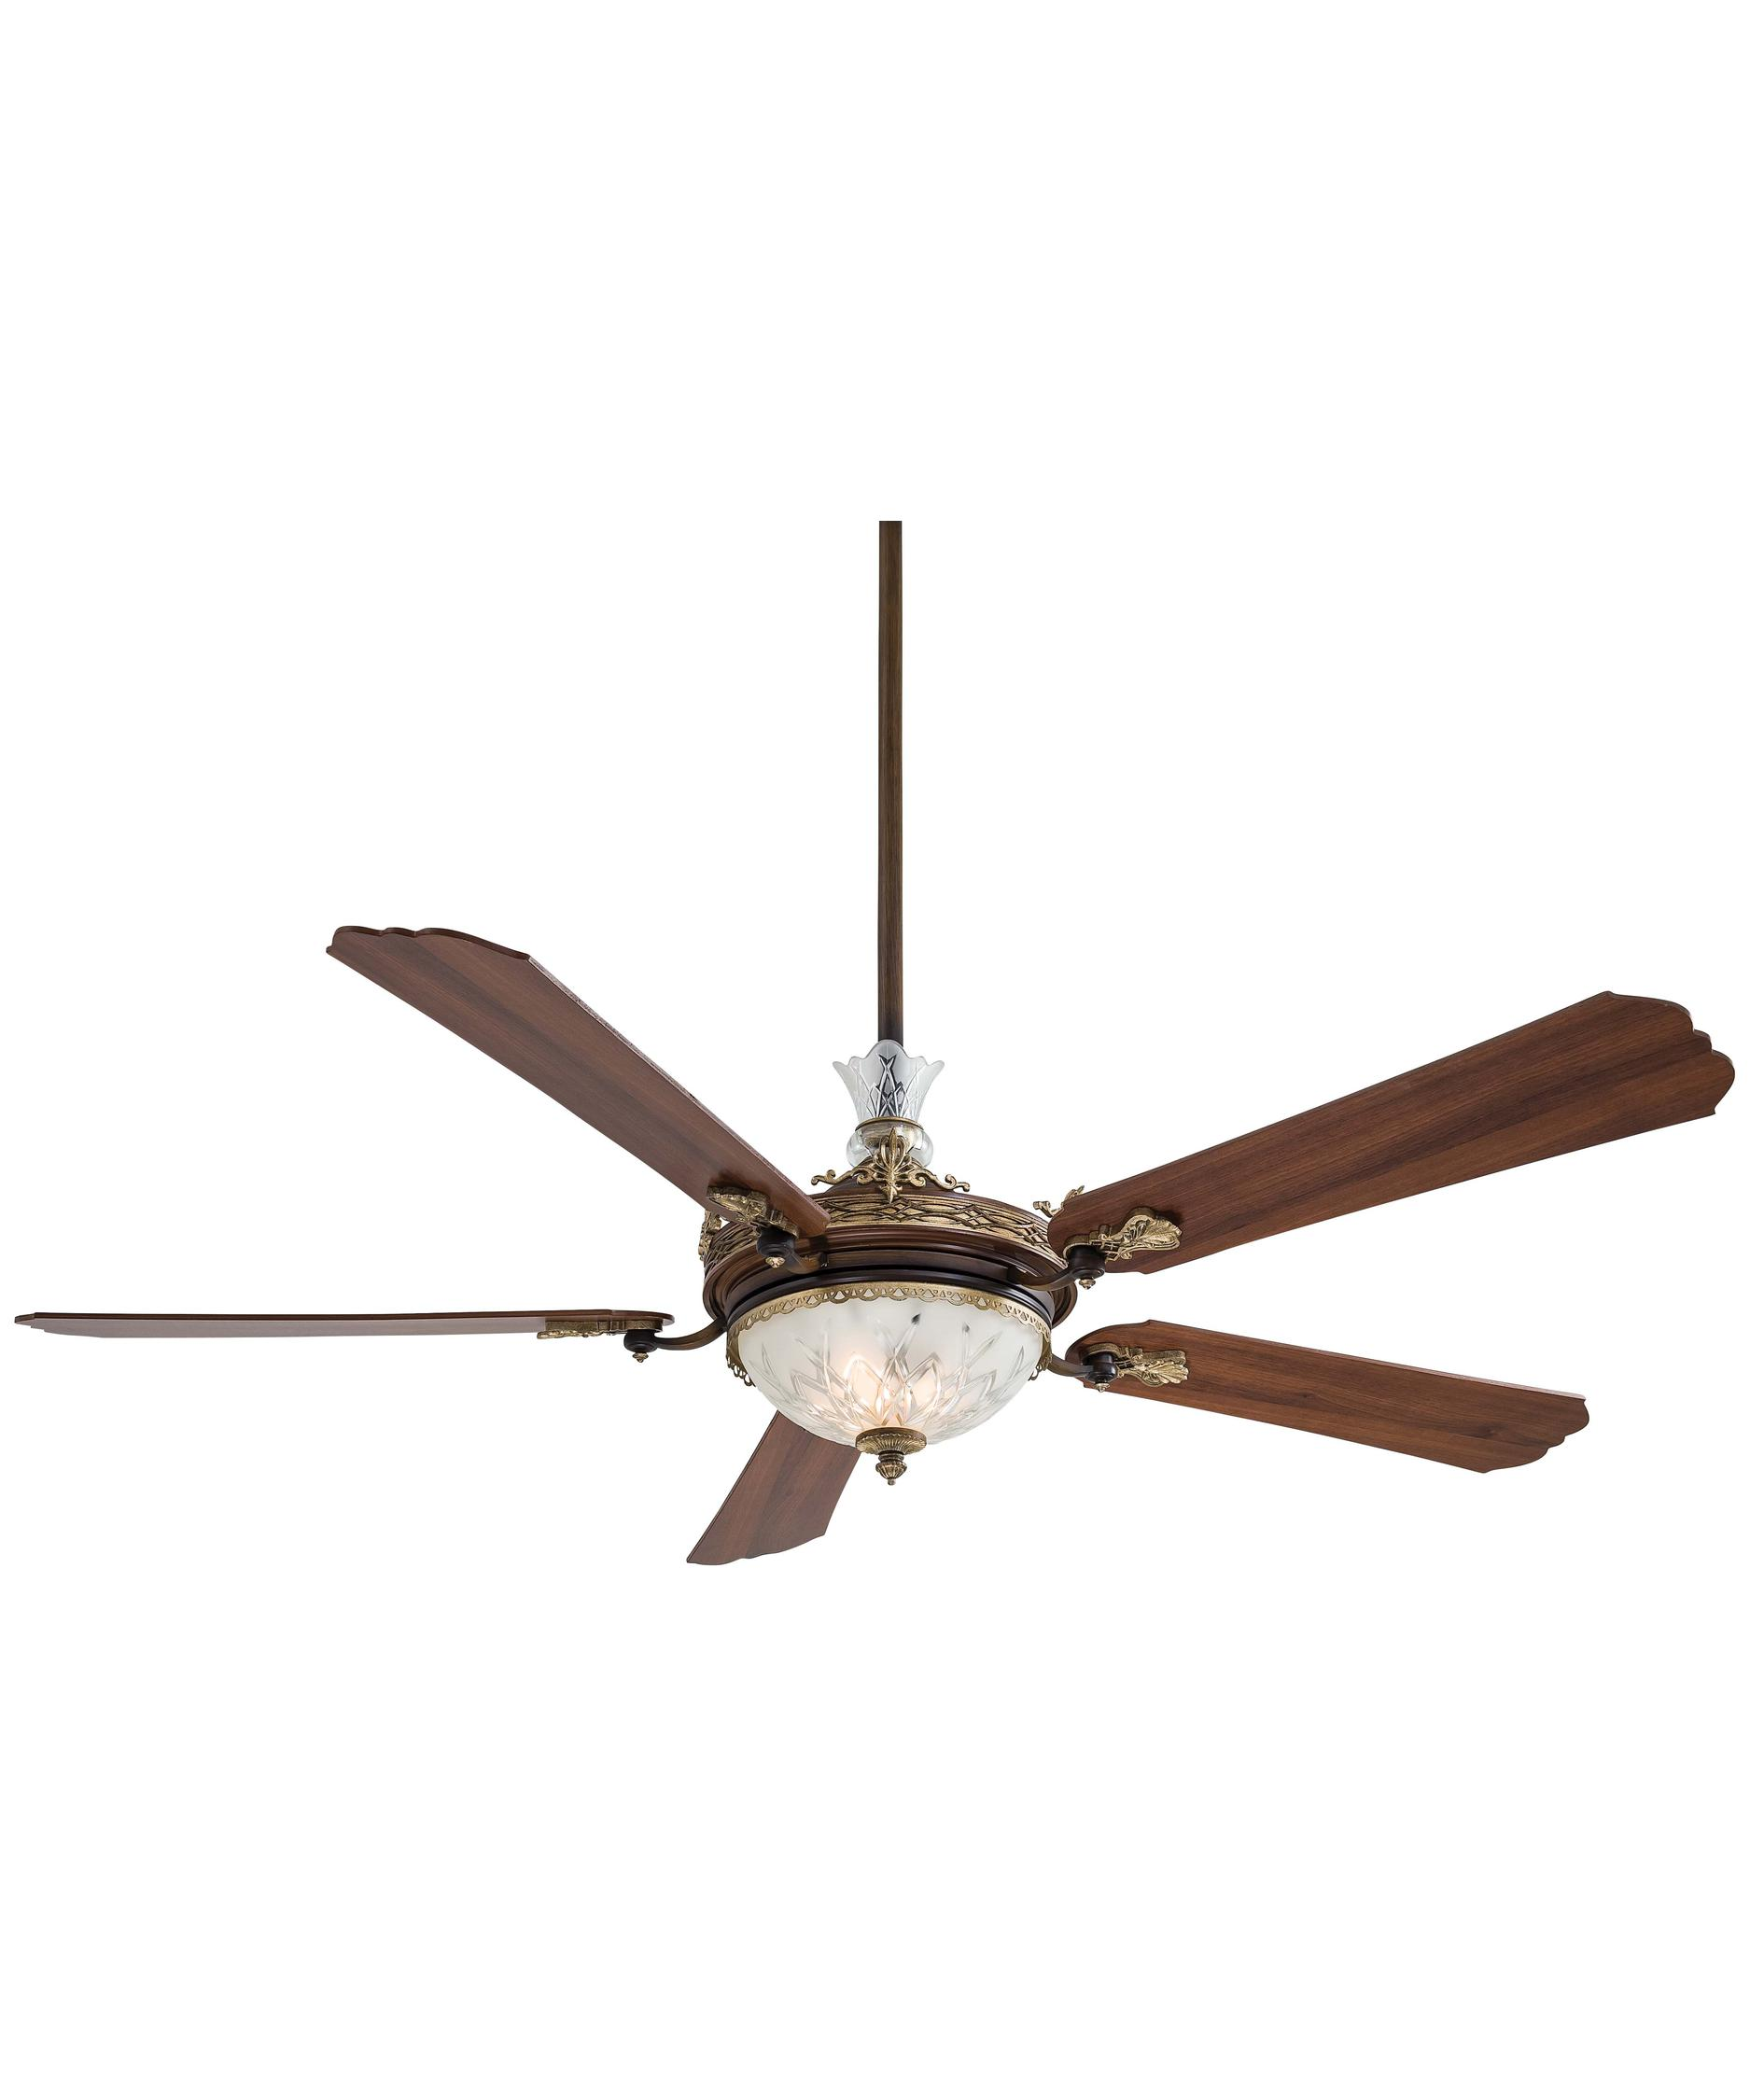 Minka Aire F900 Cristafano 68 Inch 5 Blade Ceiling Fan Capitol Lighting 1 800lighting Com